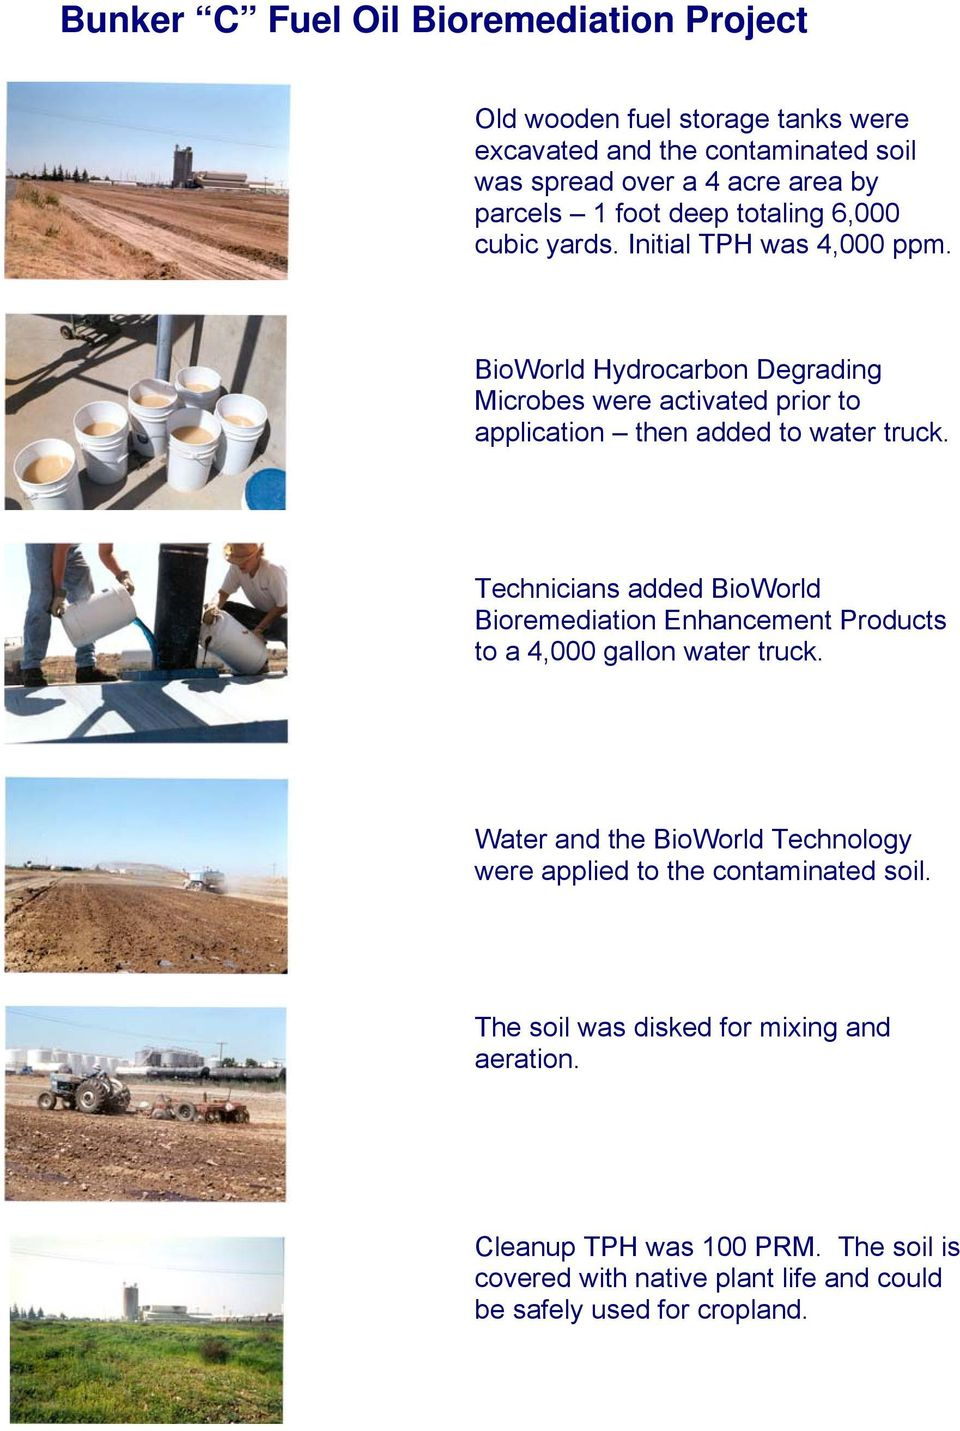 BioWorld Hydrocarbon Degrading Microbes were activated prior to application then added to water truck.